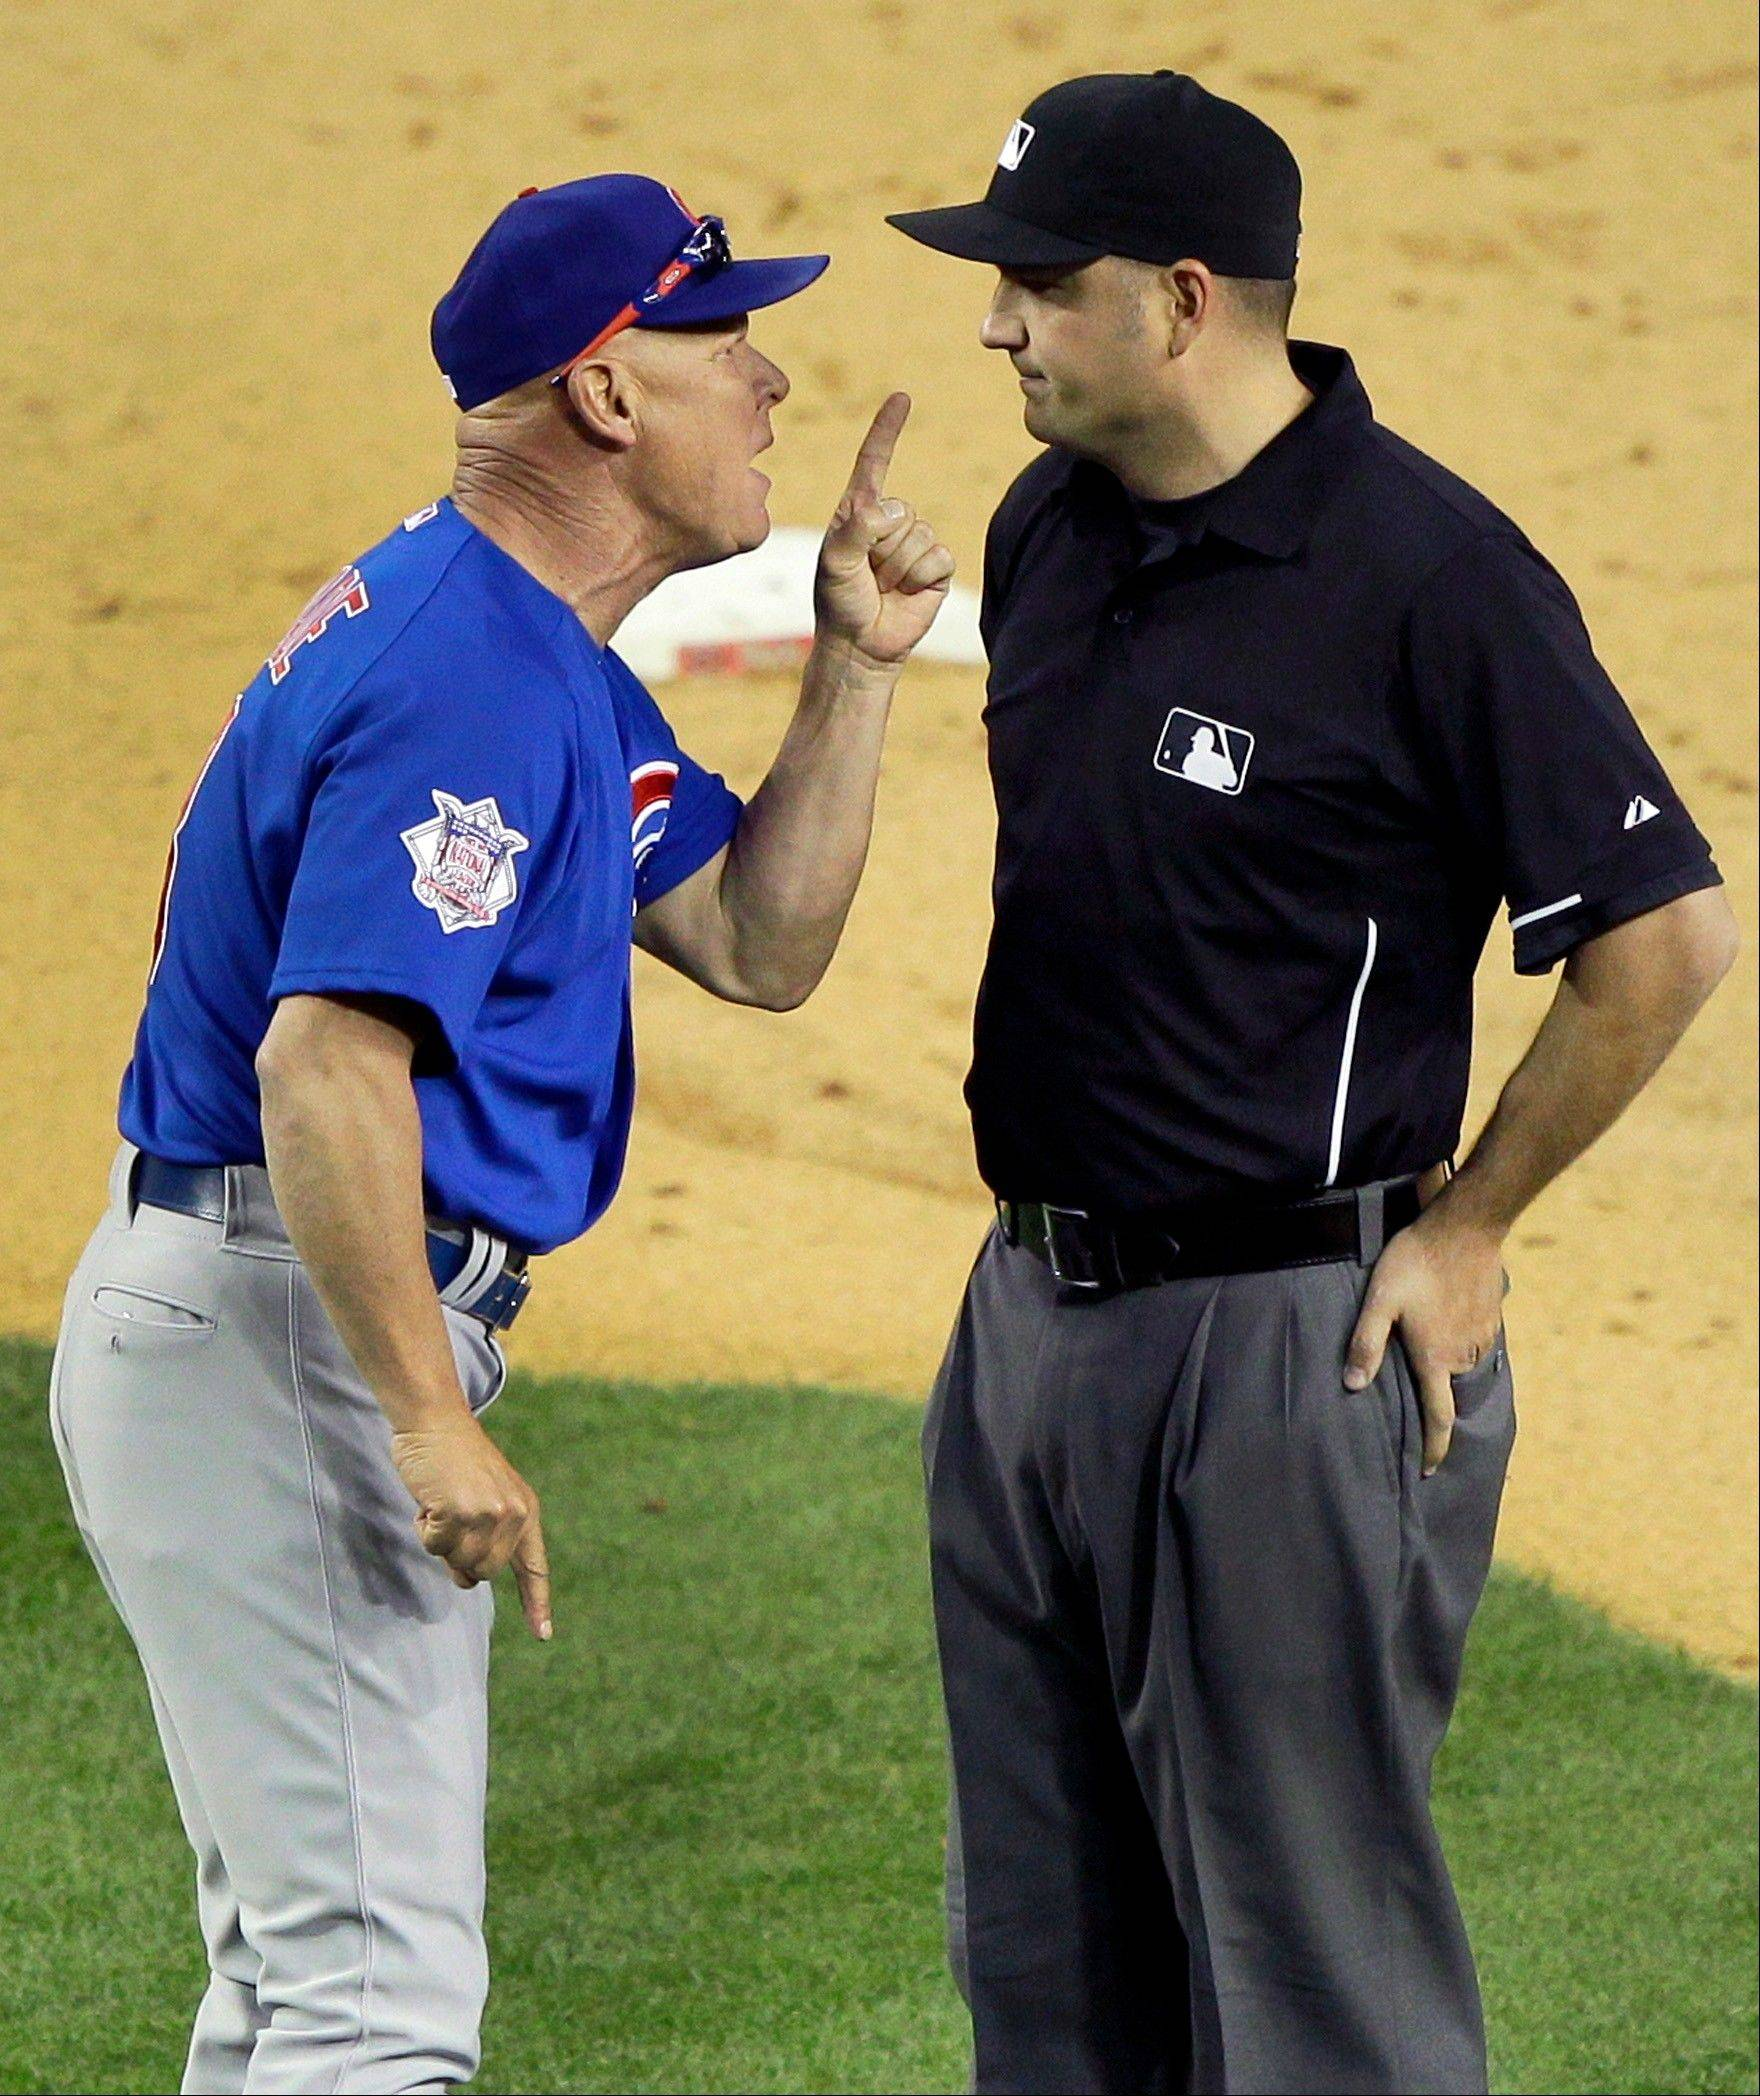 Chicago Cubs manager Mike Quade argues with umpire Dan Bellino after being ejected during the ninth inning of a baseball game against the Arizona Diamondbacks Saturday, April 30, 2011, in Phoenix.